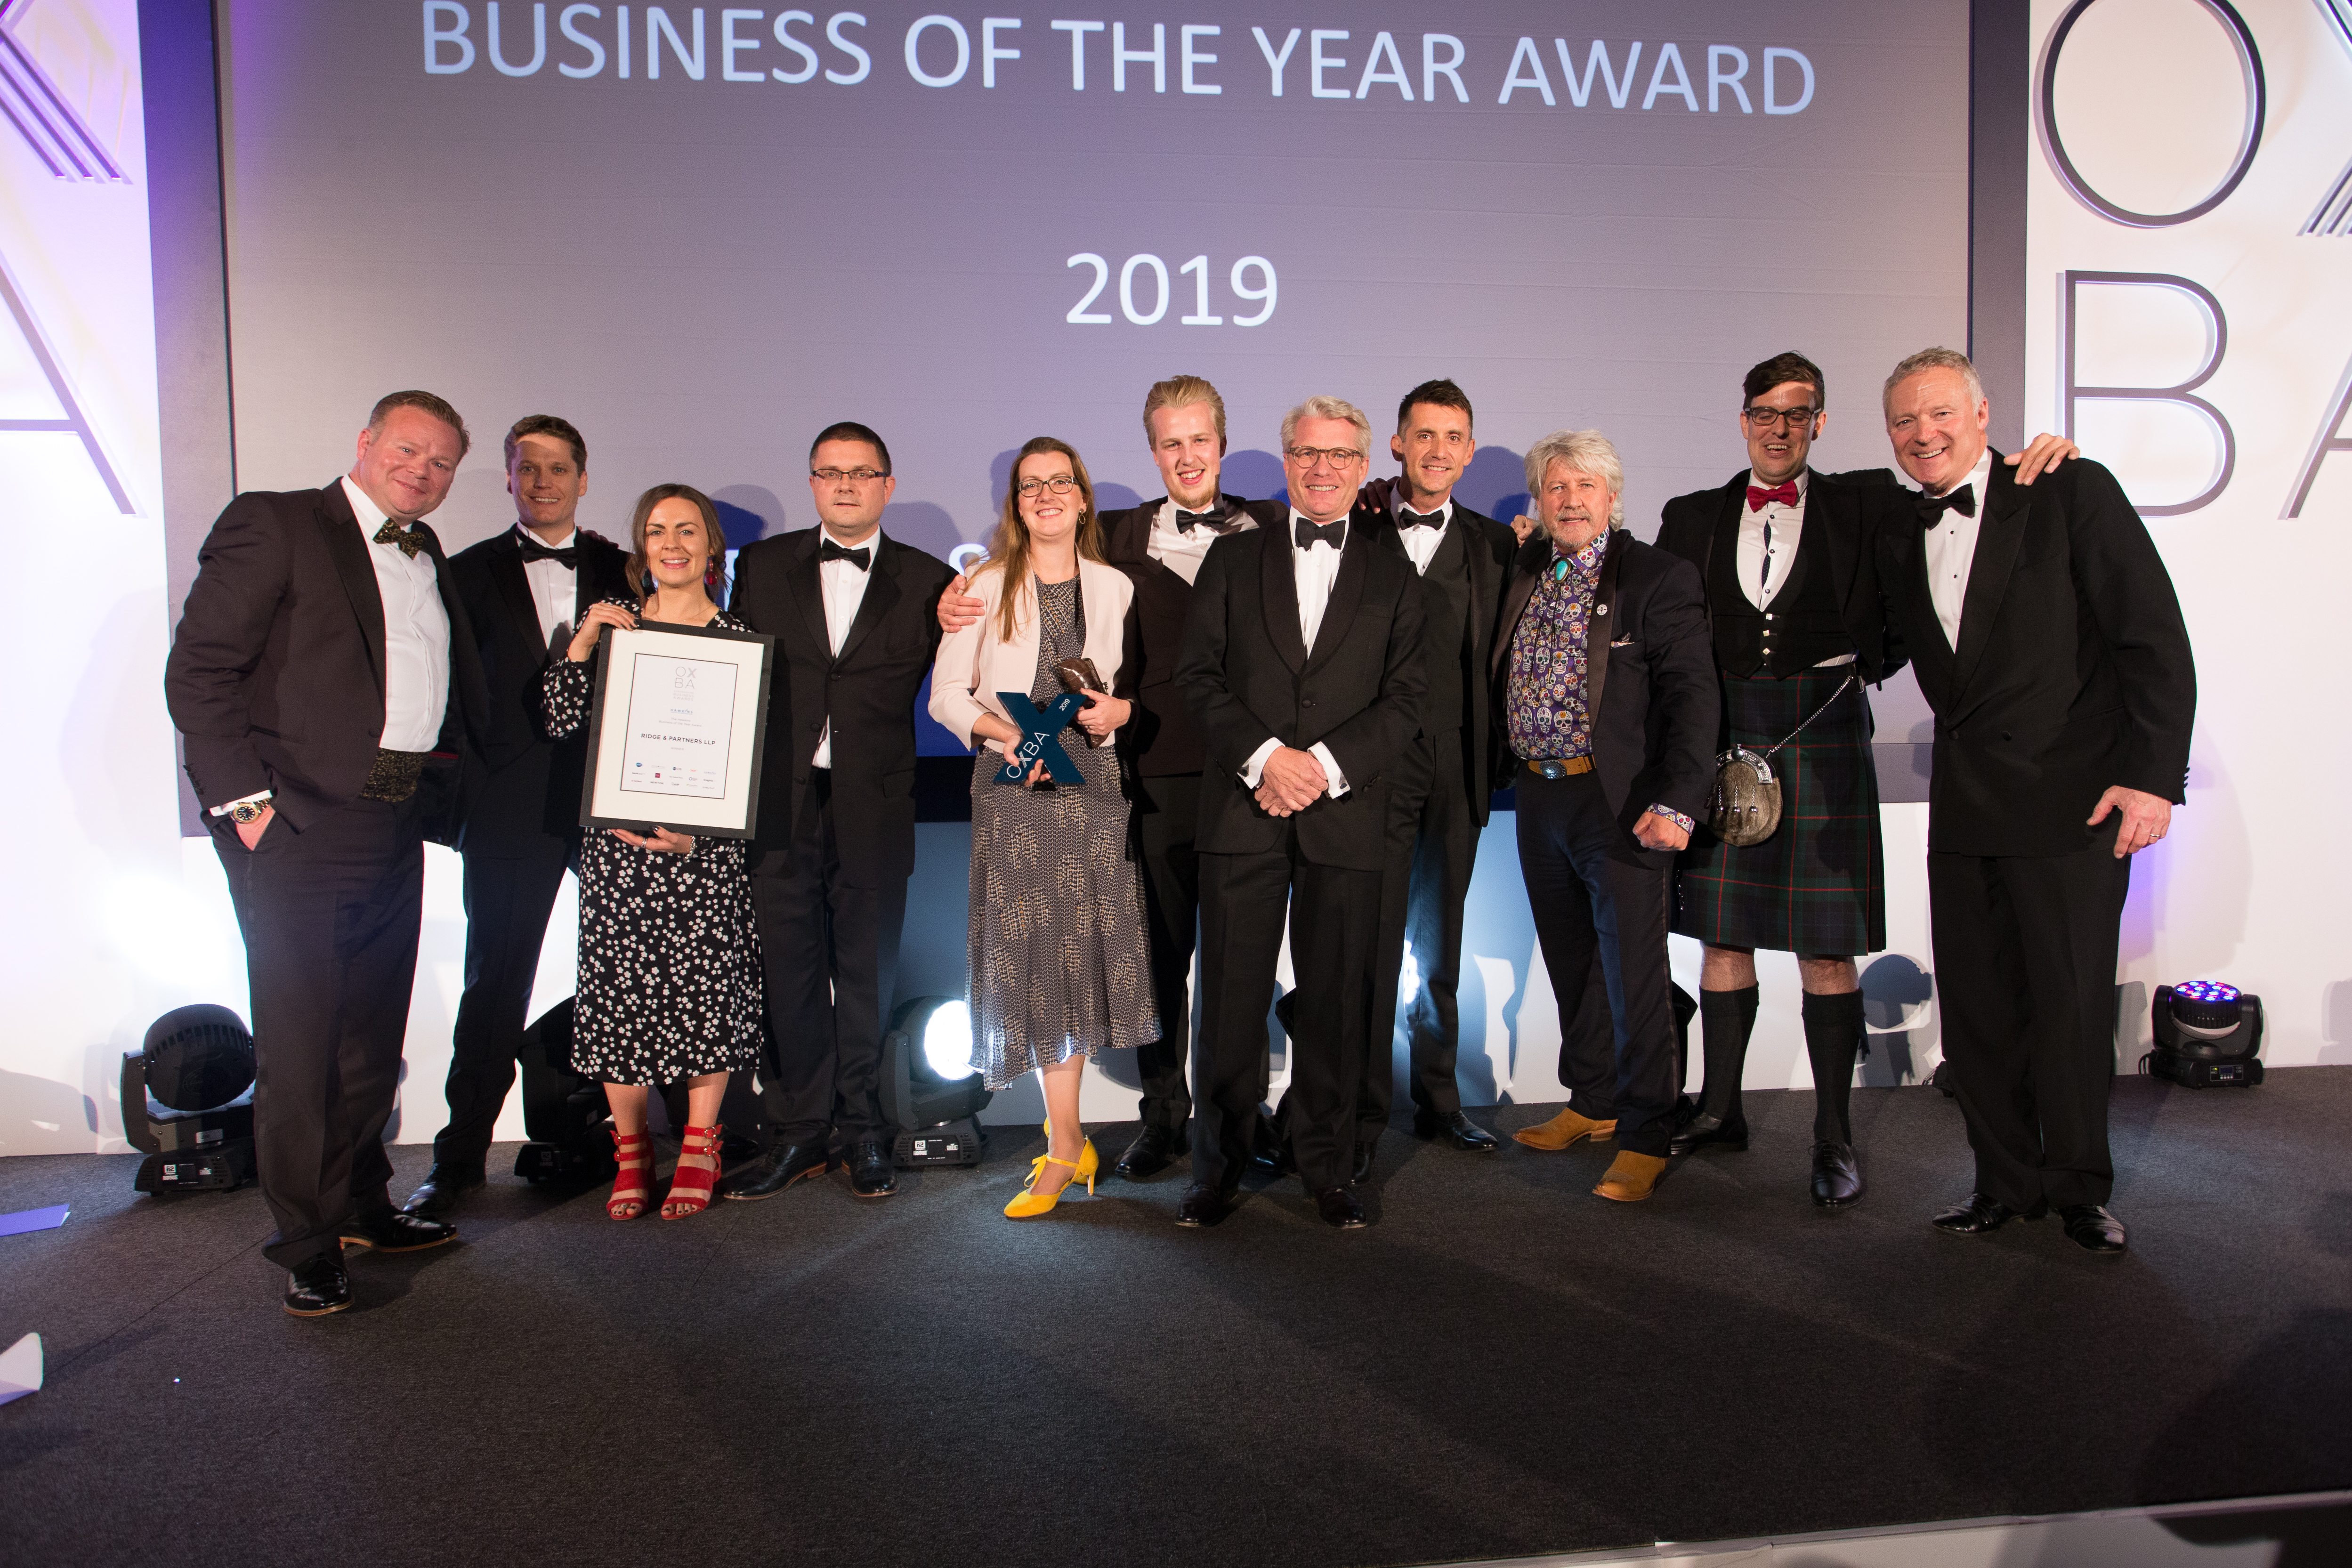 The Hawkins Business of the Year Award